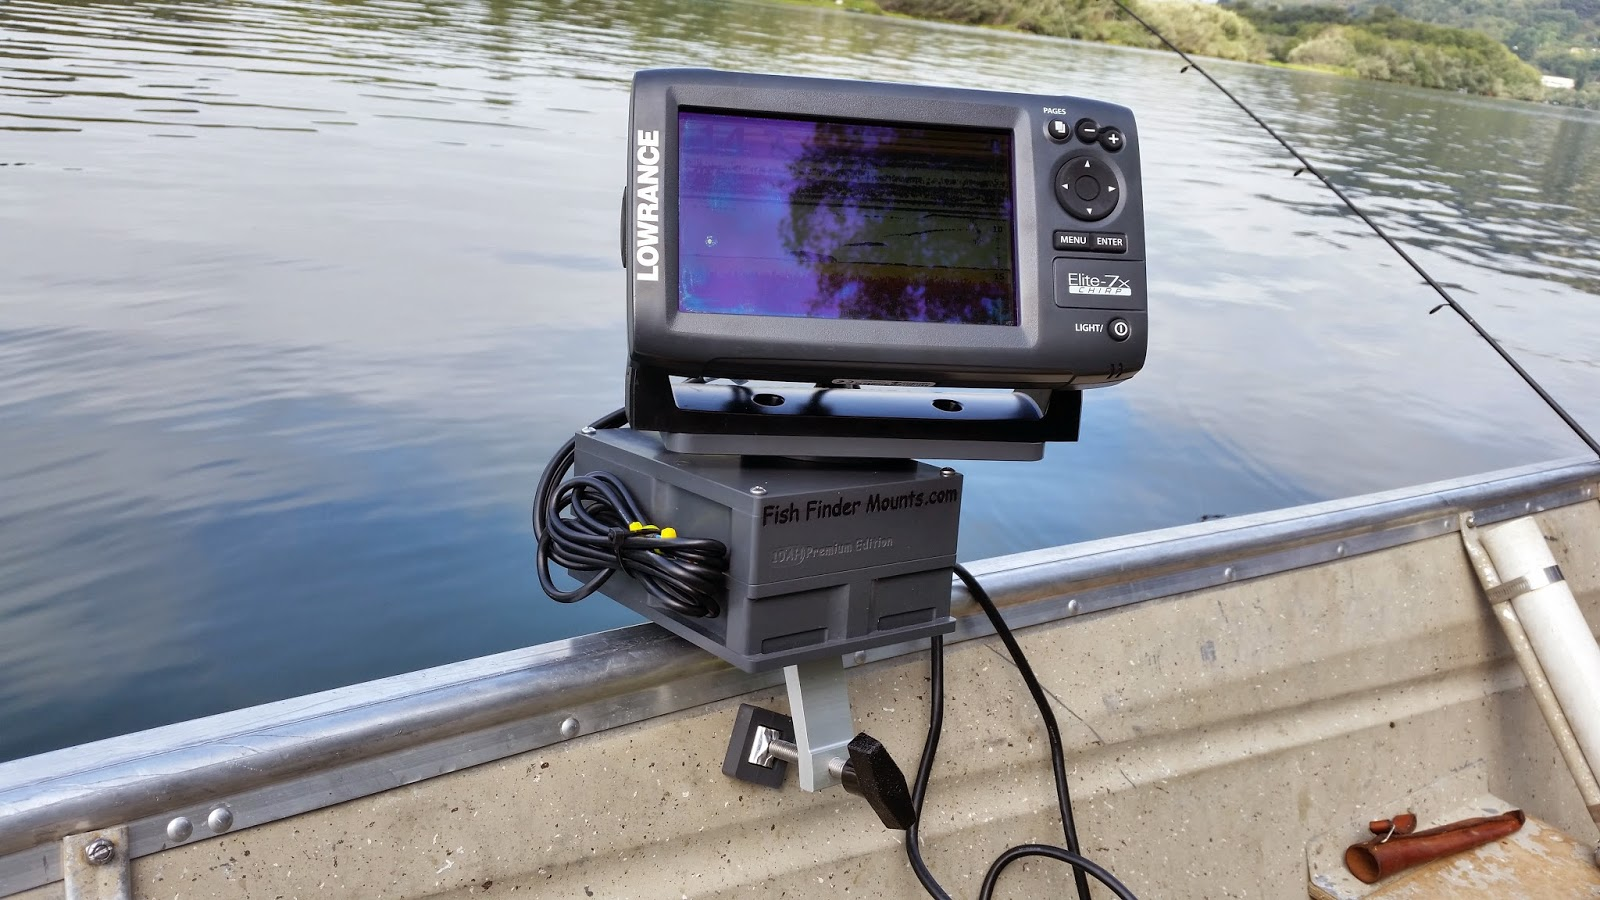 fish finder and transducer mounting solutions: a super fishfinder, Fish Finder